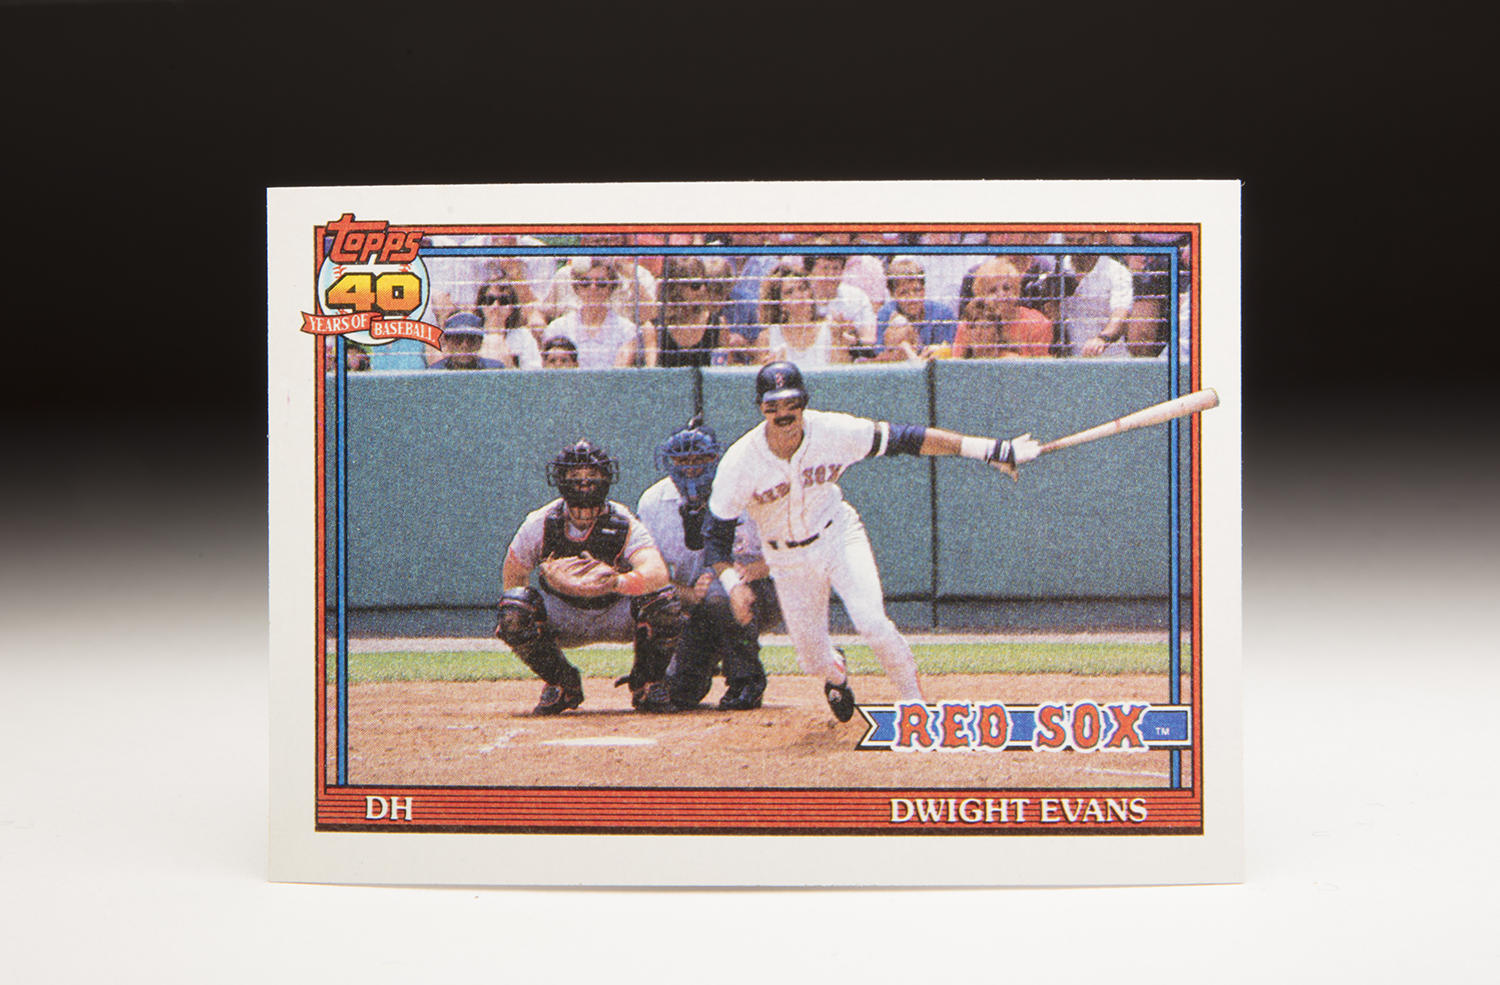 Taken from somewhere in the center field bleachers at Fenway Park, or from one of the bullpens, Dwight Evans' 1991 Topps card gives a head-on look as he completes his swing in a game during the 1990 season. (Milo Stewart Jr. / National Baseball Hall of Fame and Museum)